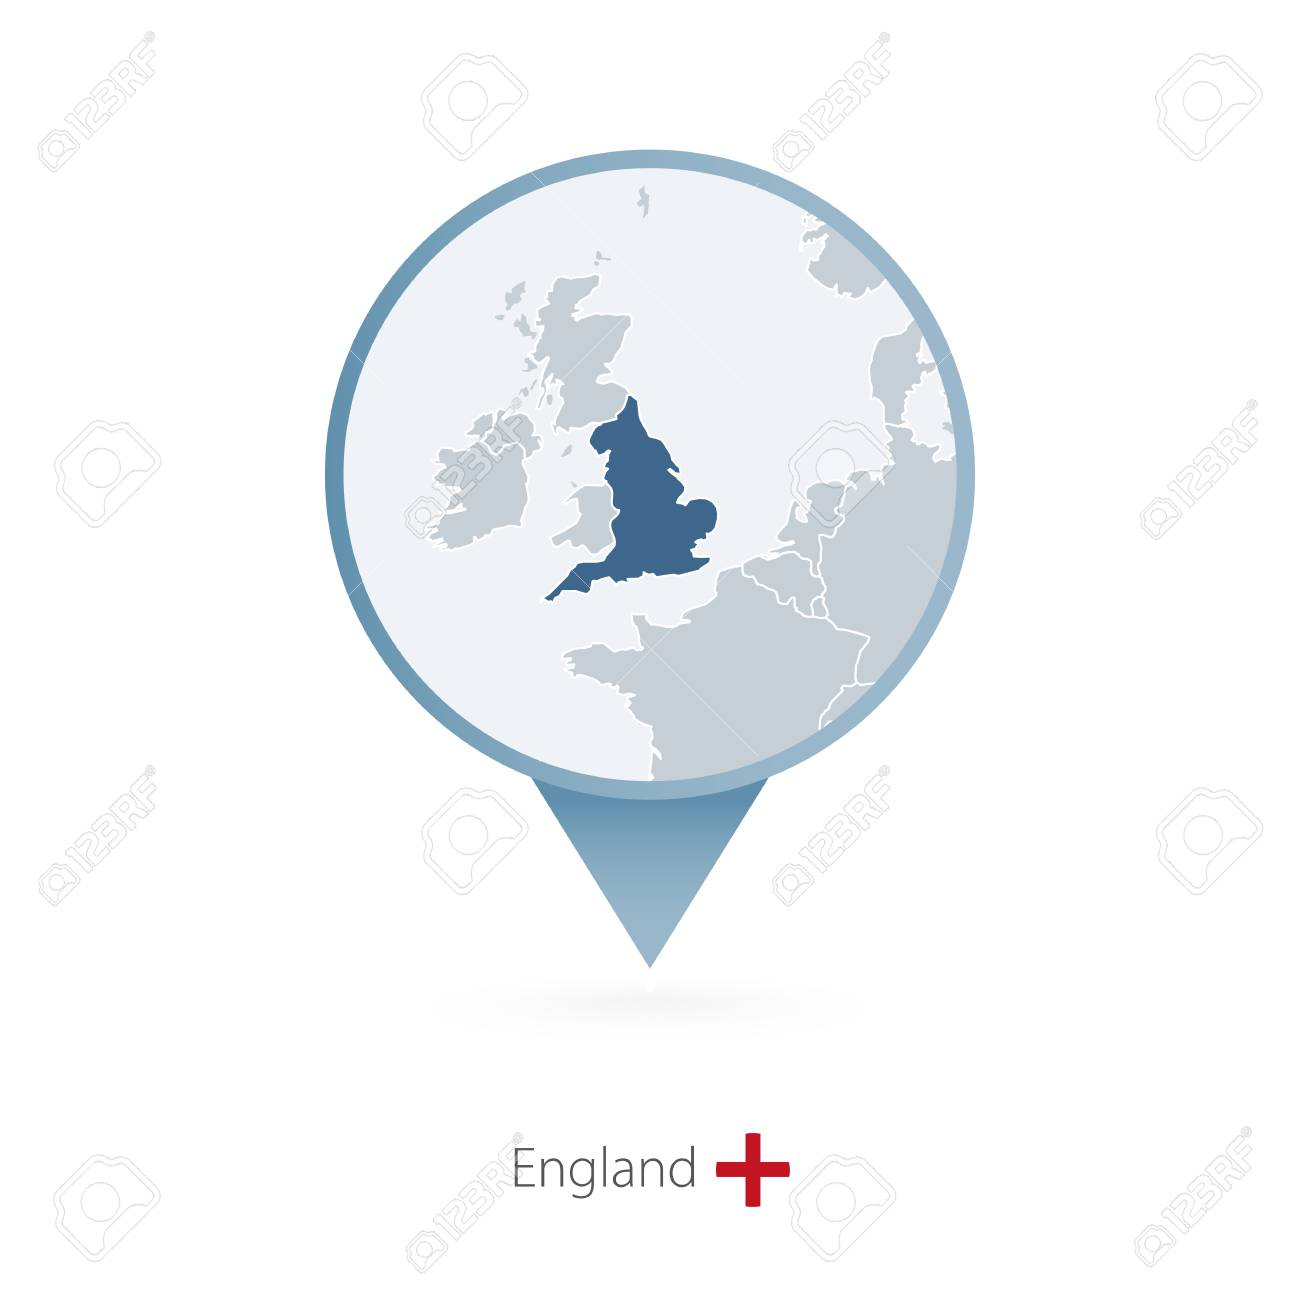 Map Pin With Detailed Map Of England And Neighboring Countries